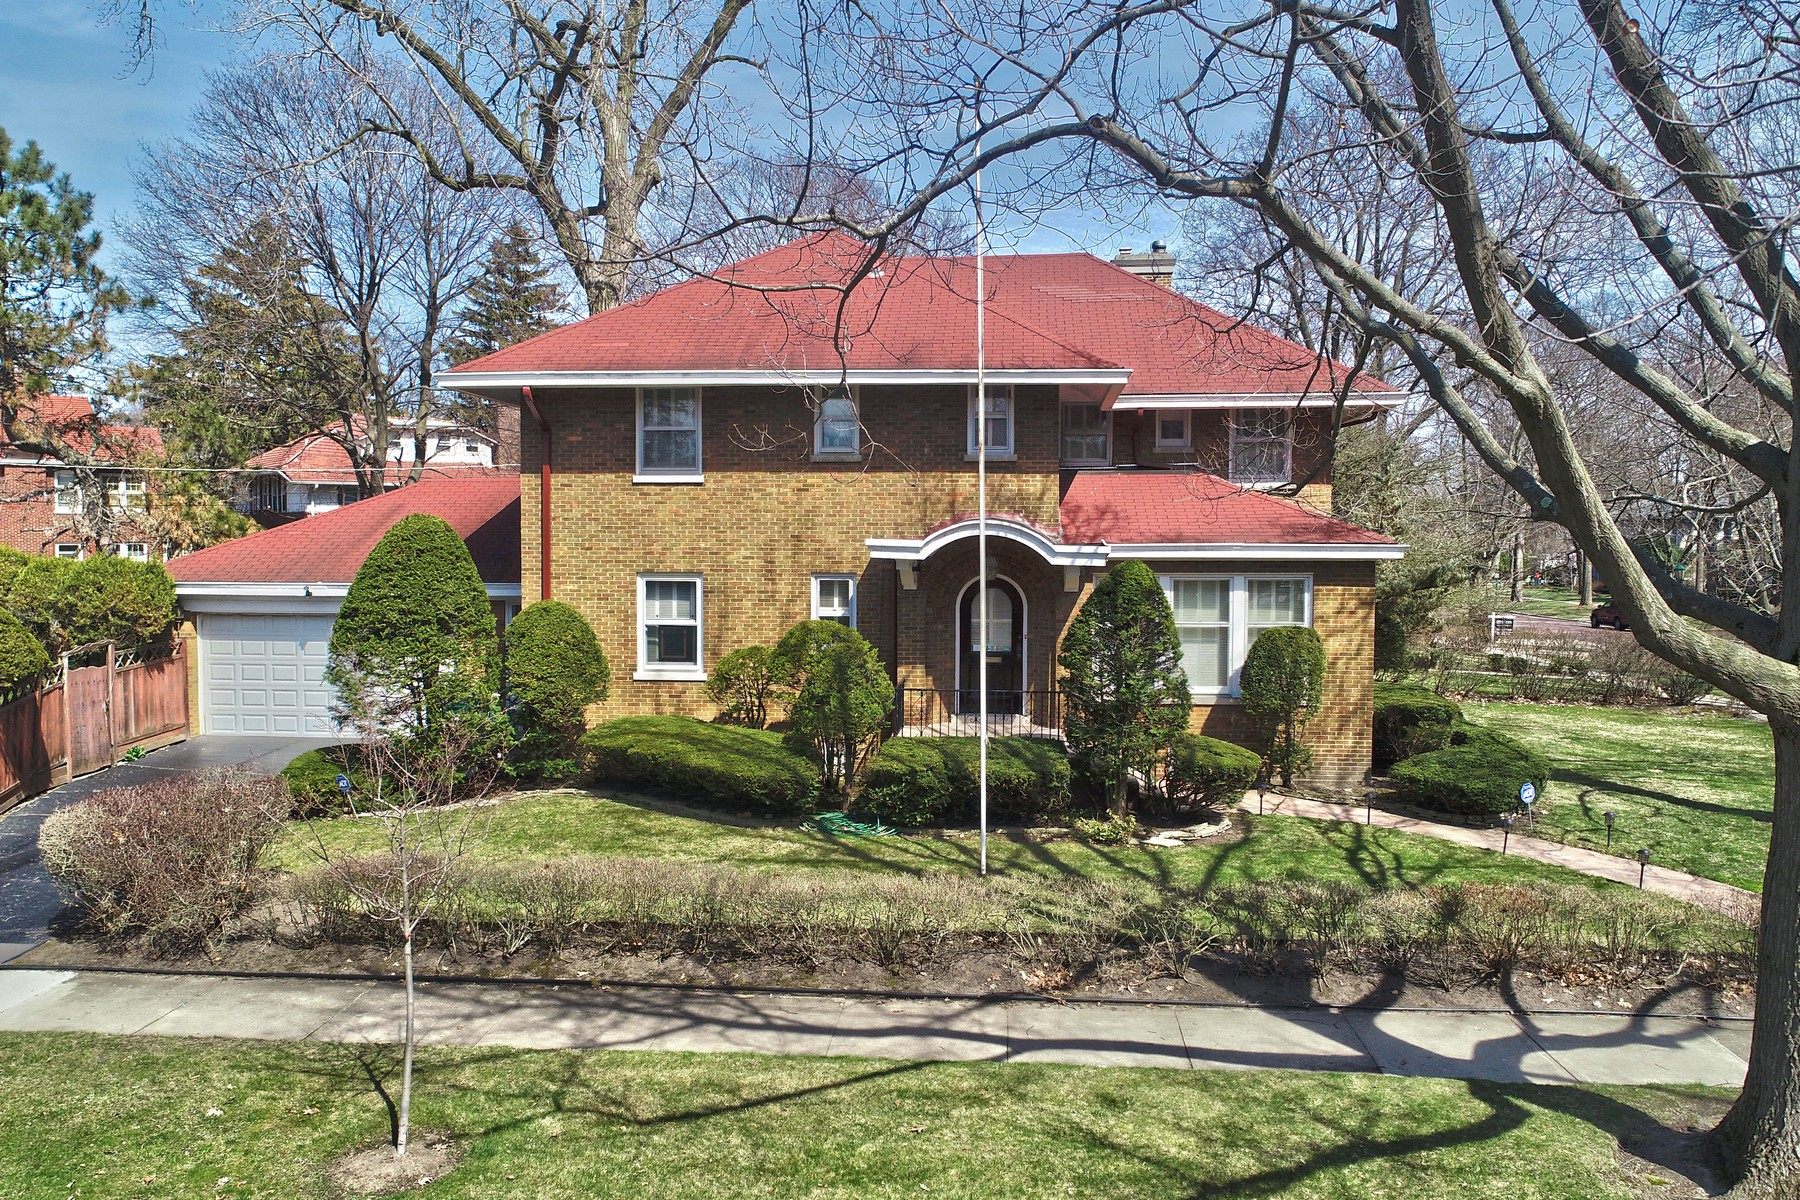 Single Family Home for Active at Grand and gracious brick home 630 Elmwood Avenue Wilmette, Illinois 60091 United States